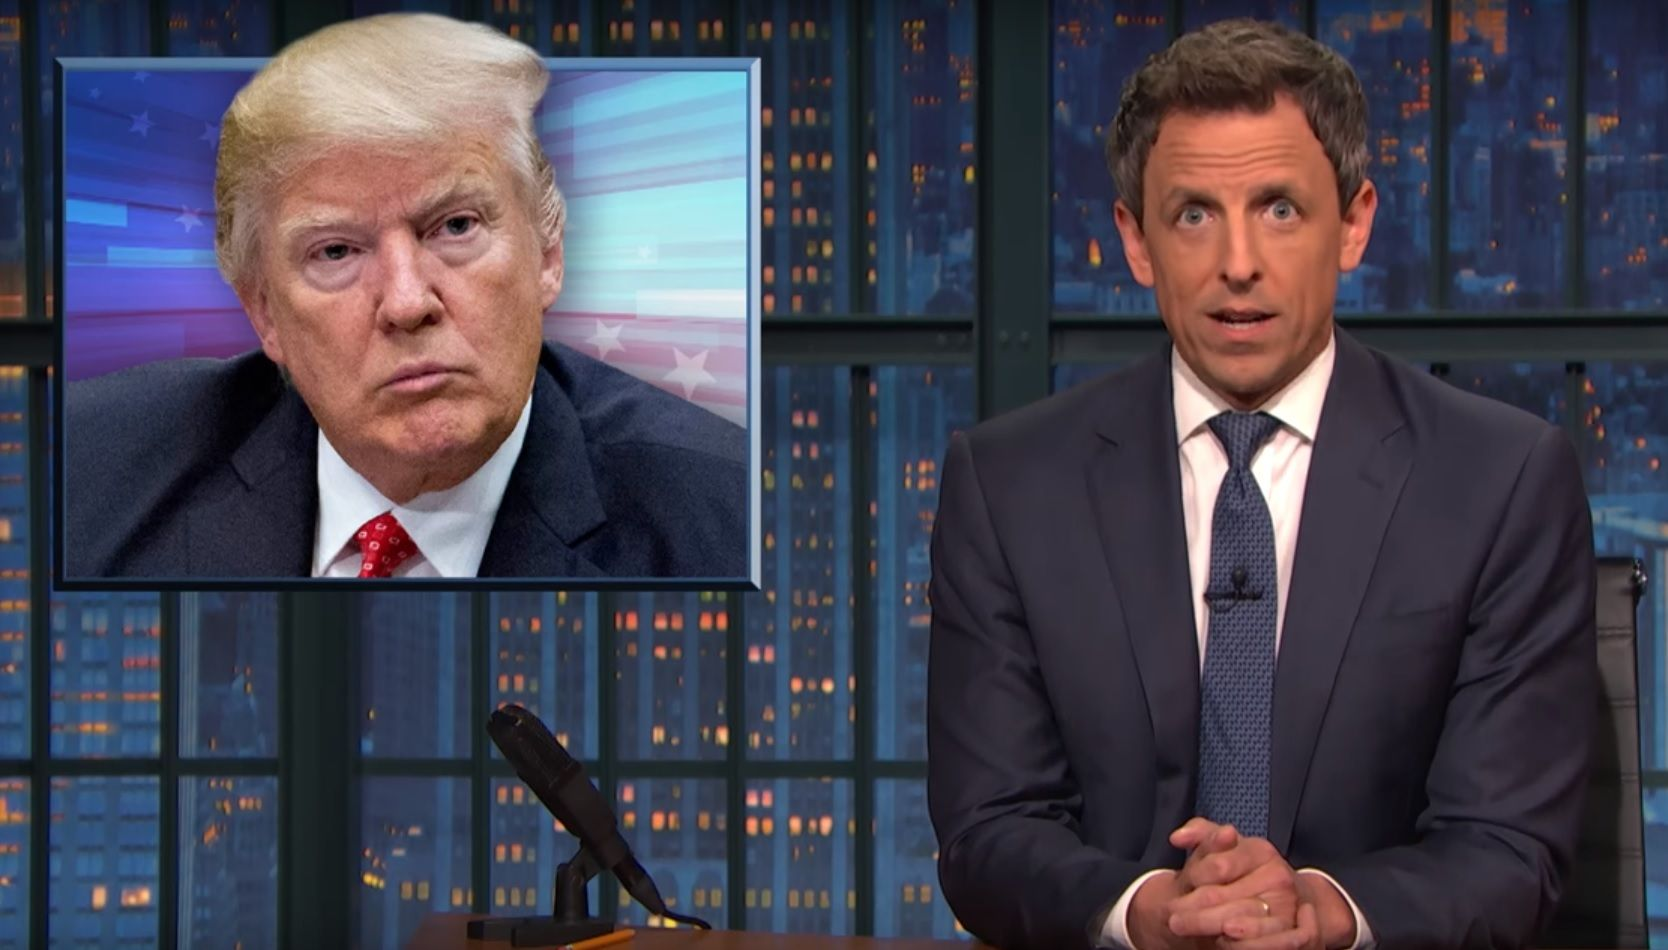 Seth Meyers says Trump is unfit for presidency